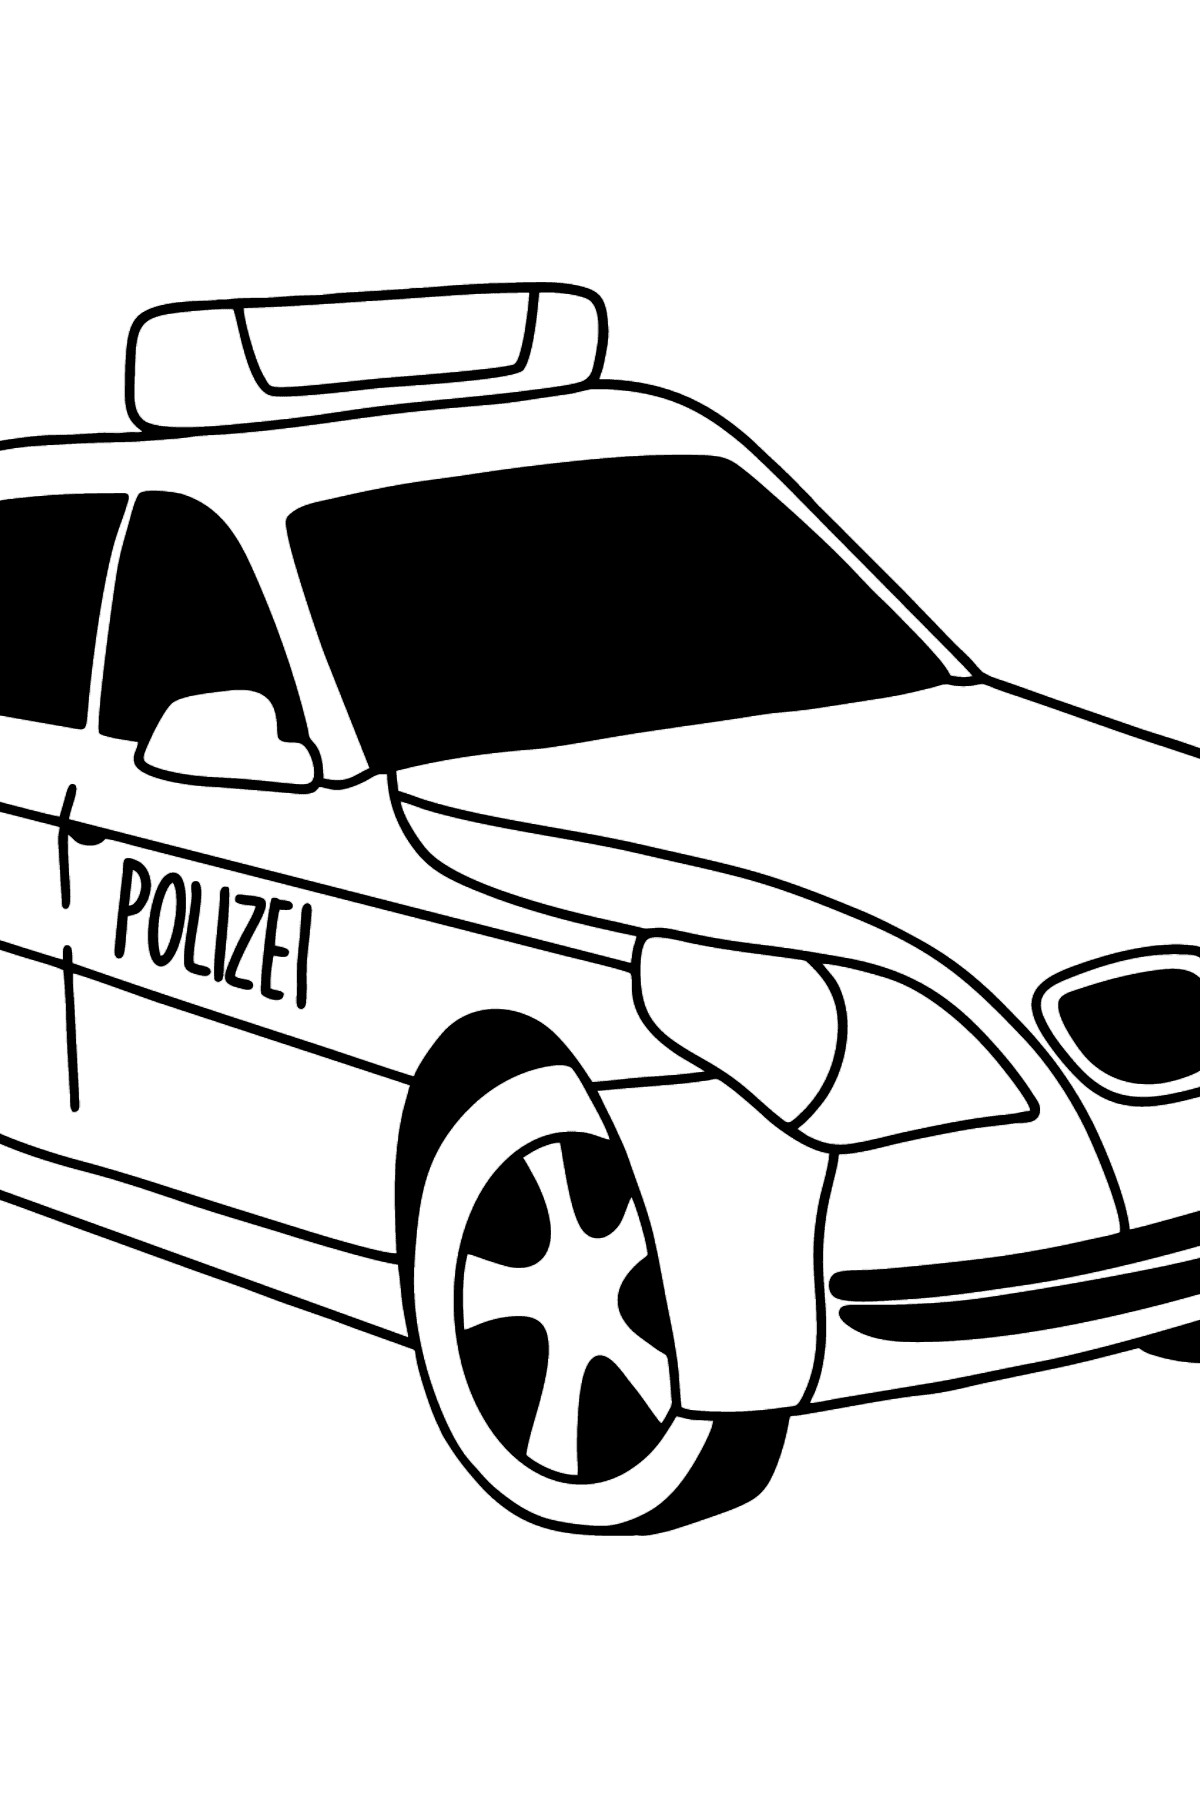 Police Car in Germany coloring page - Coloring Pages for Kids